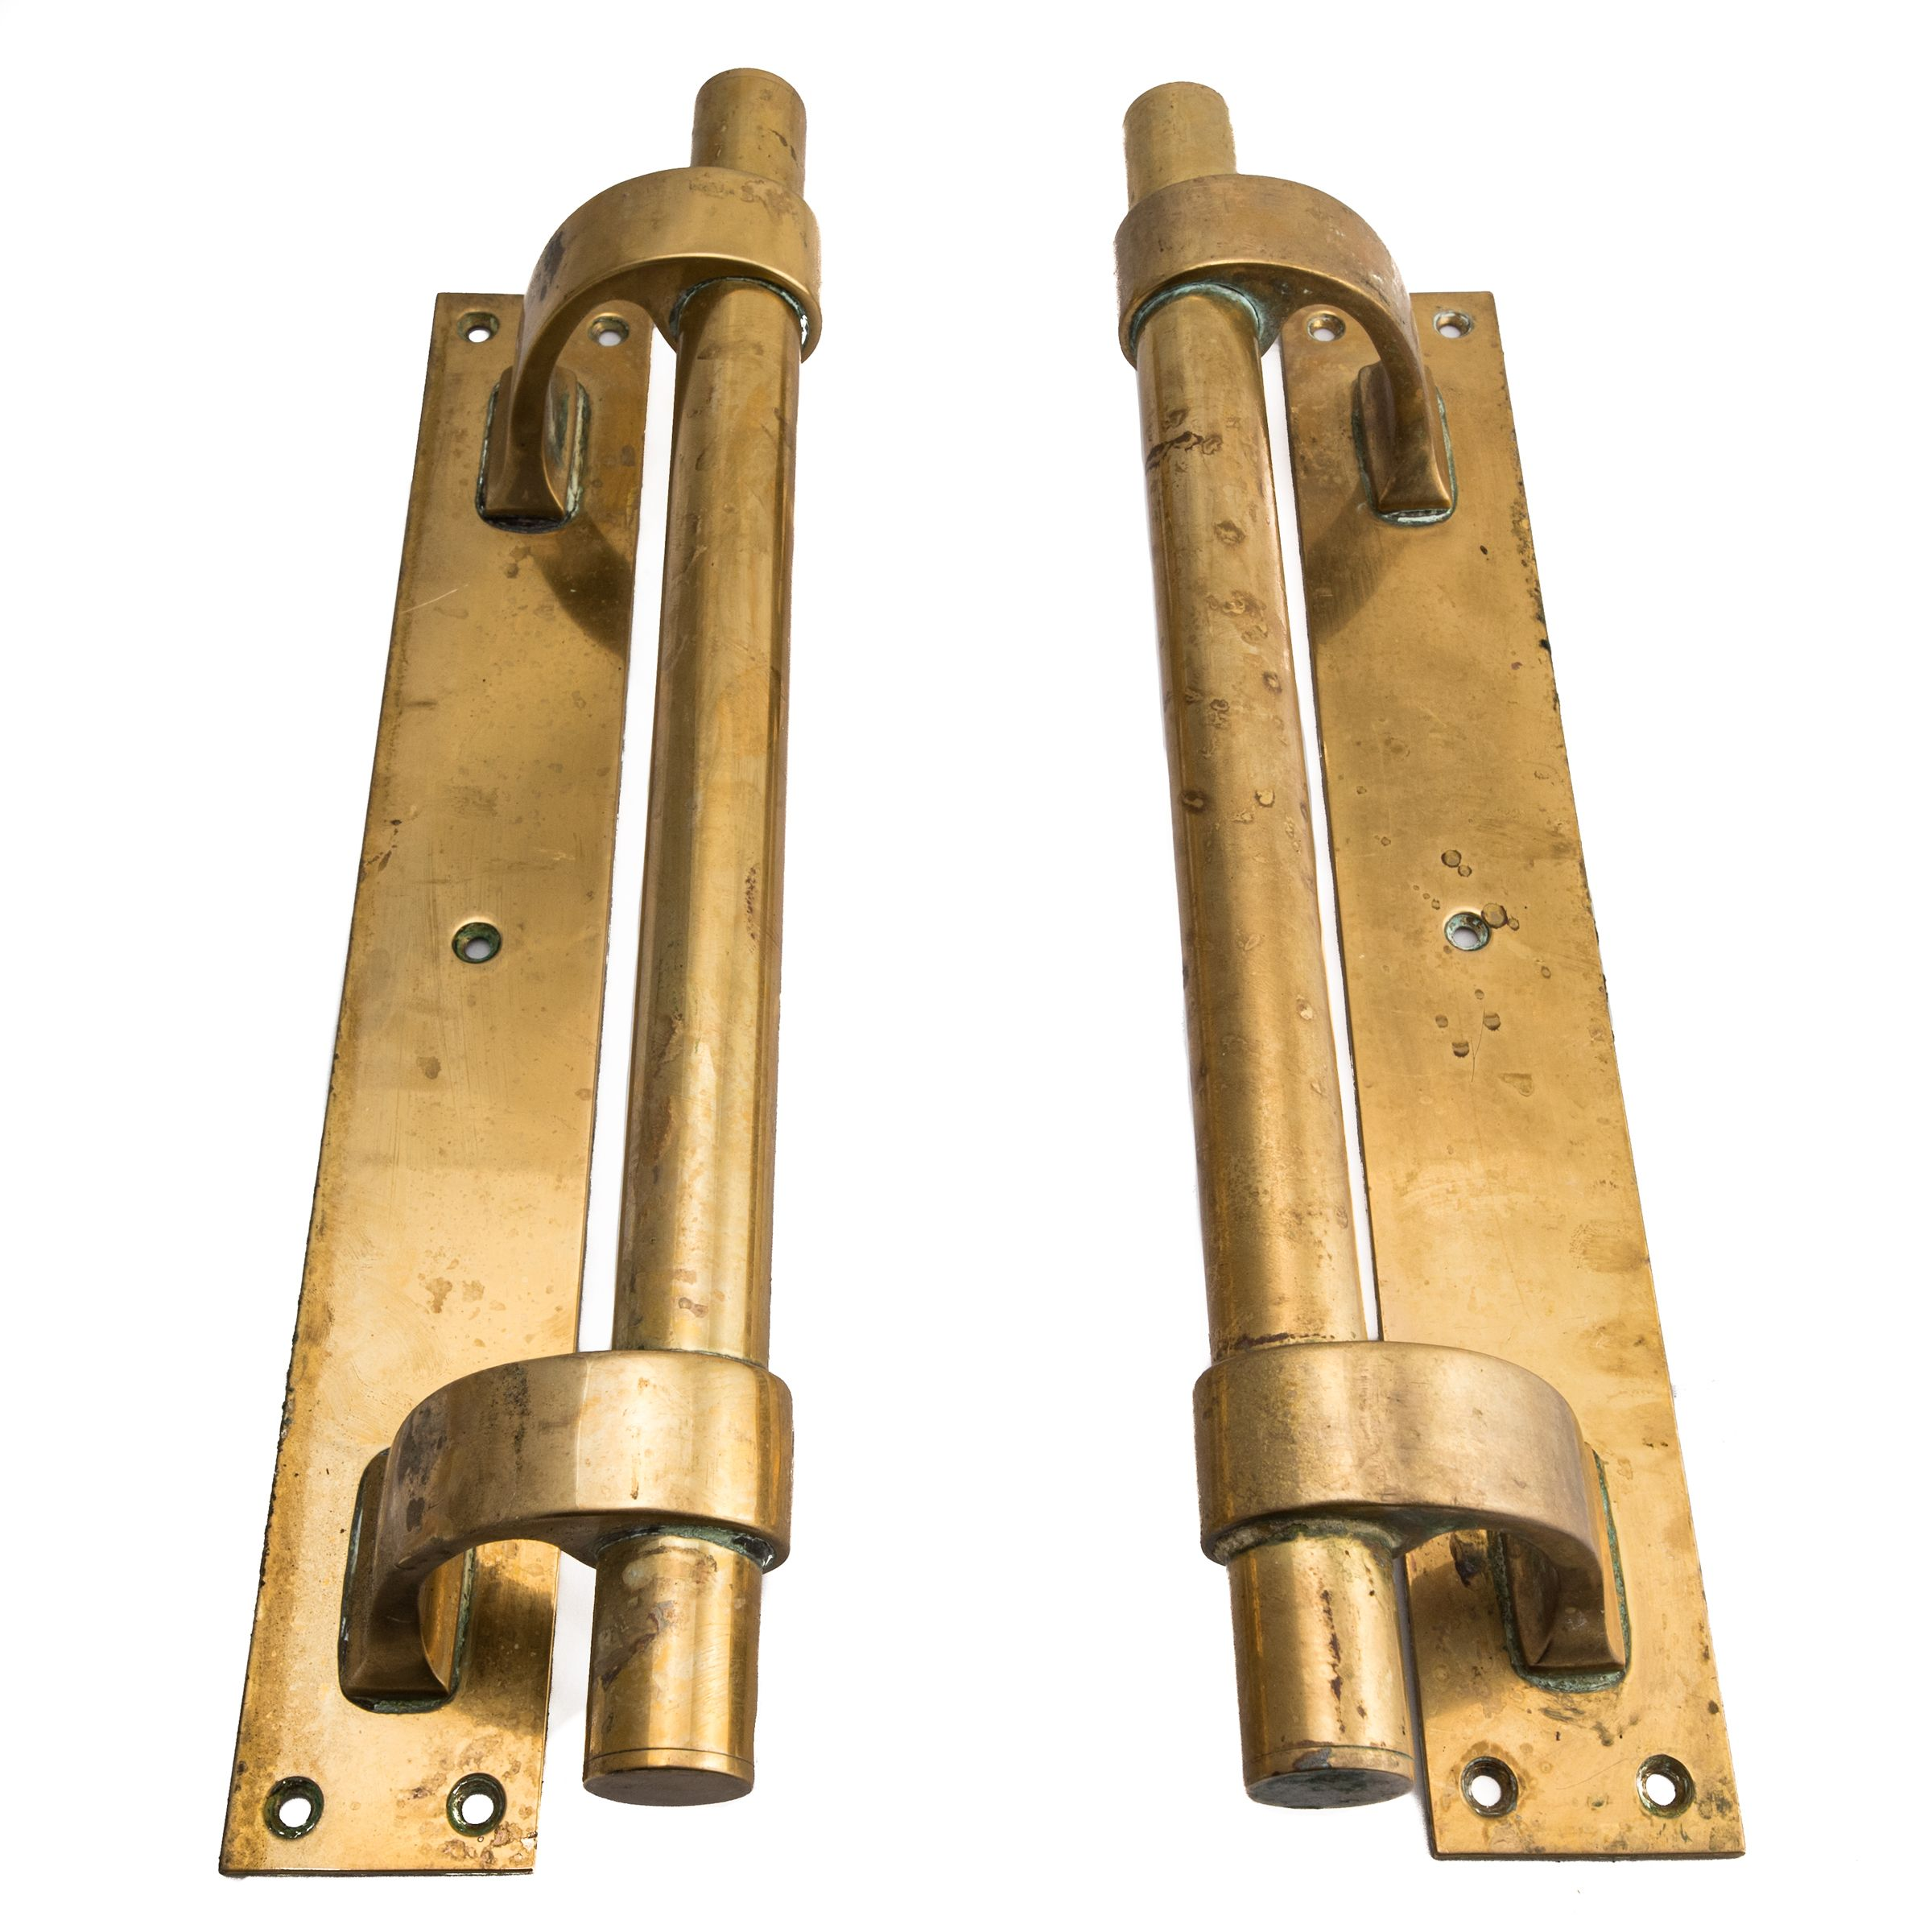 Art Deco Solid Brass Door Pull Handles Architectural Salvage And